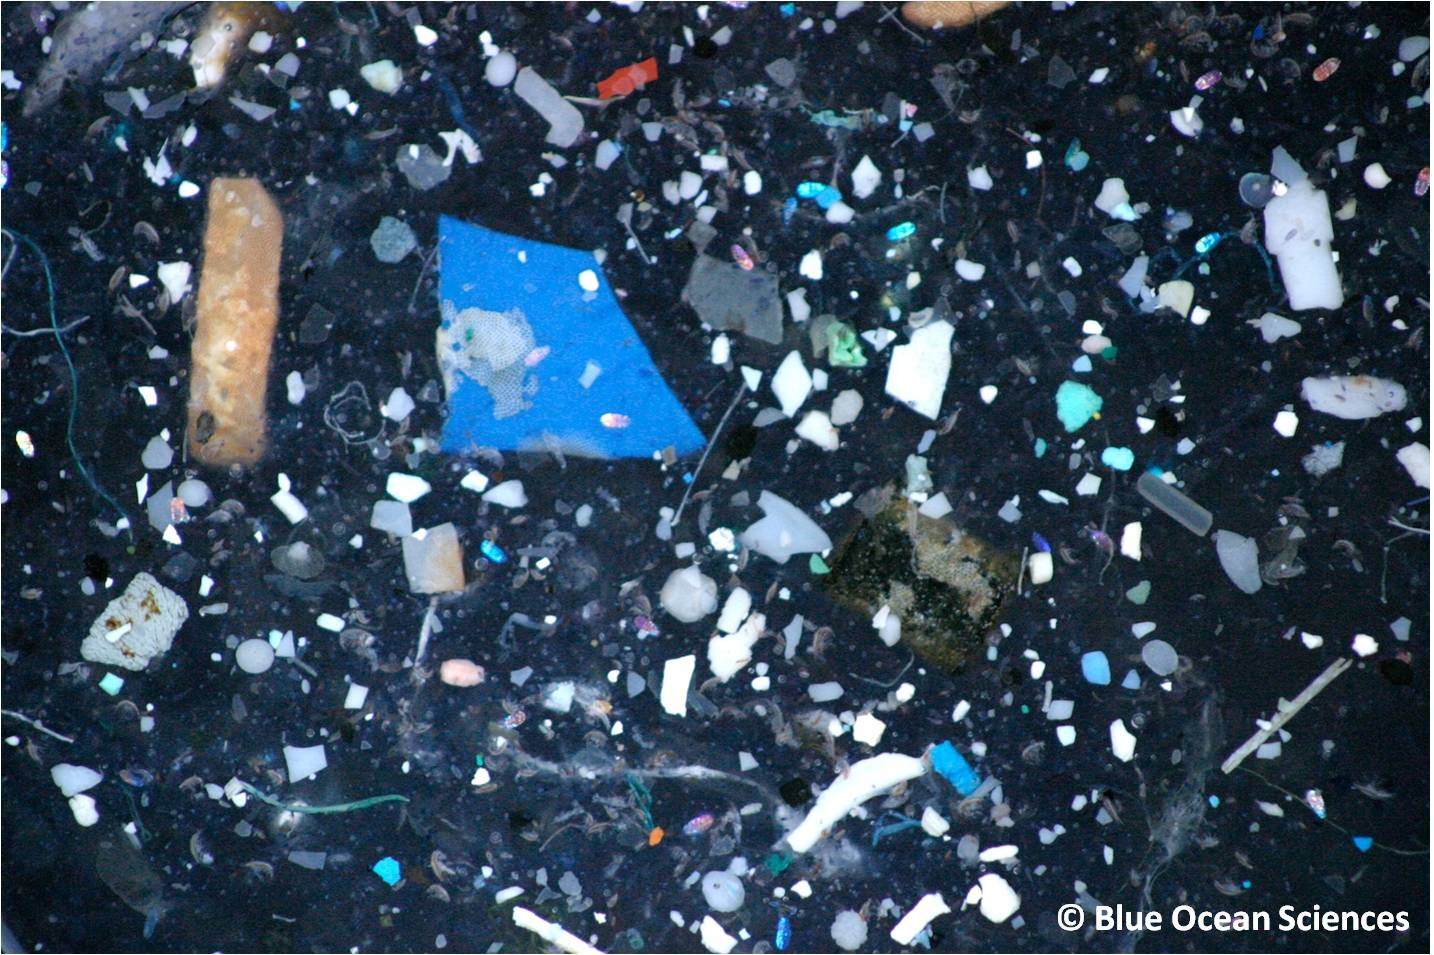 The problem of plastic in the ocean